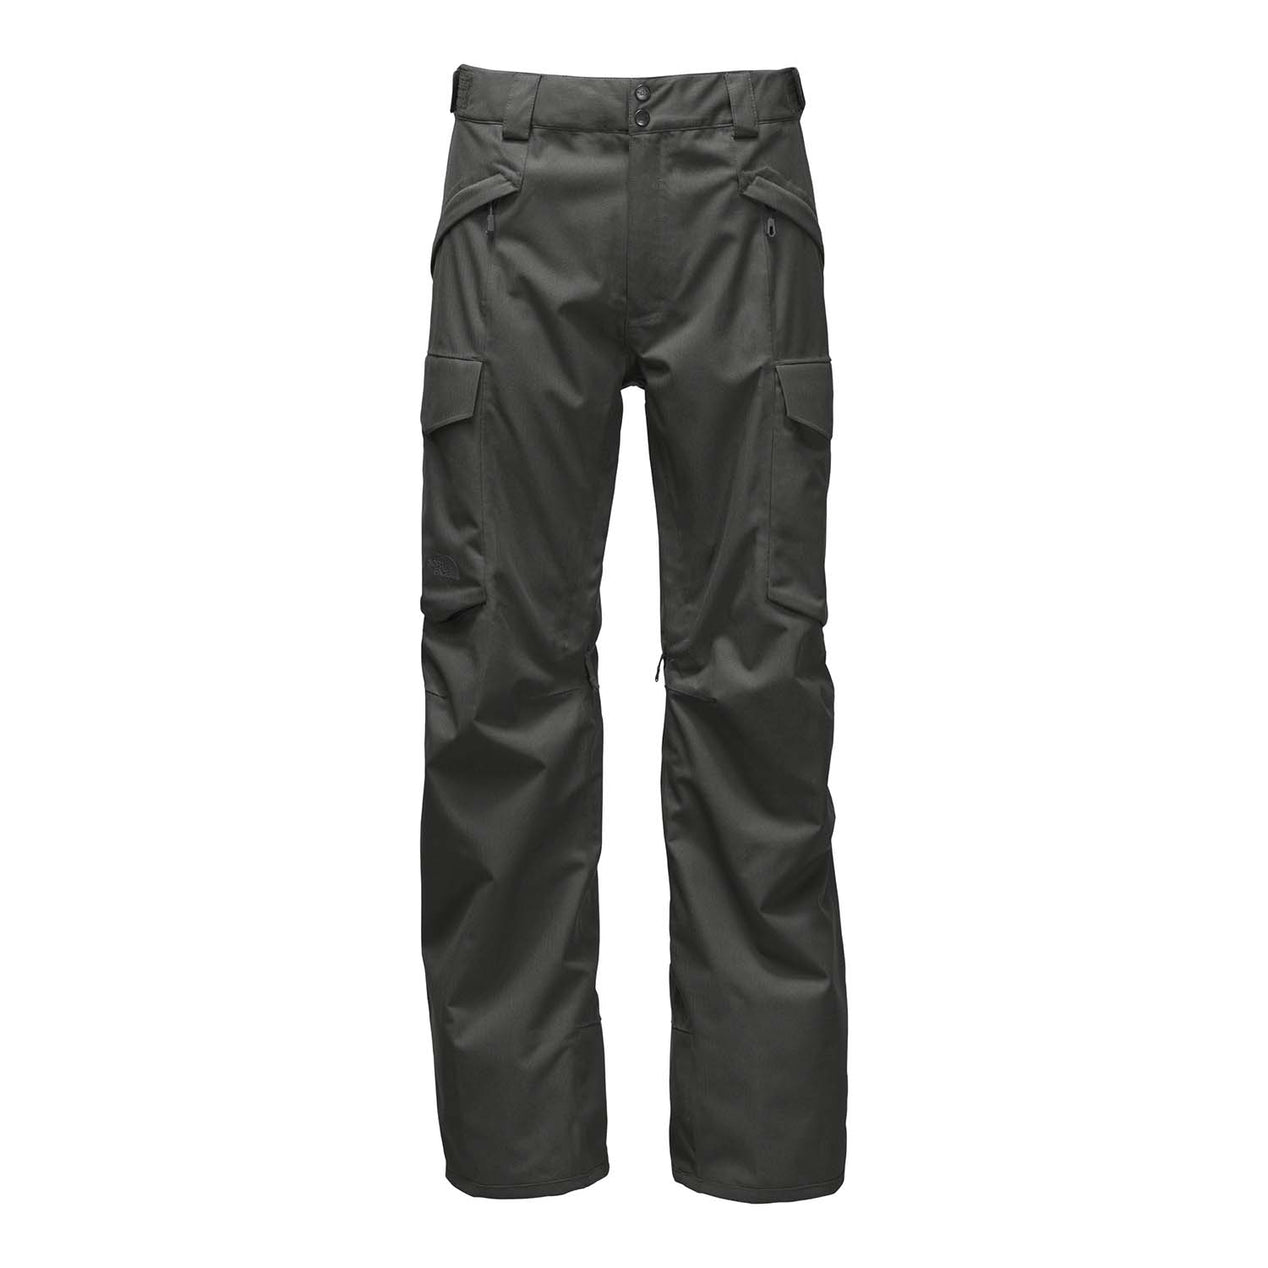 00c39cb344fd The North Face Men s Gatekeeper Pants